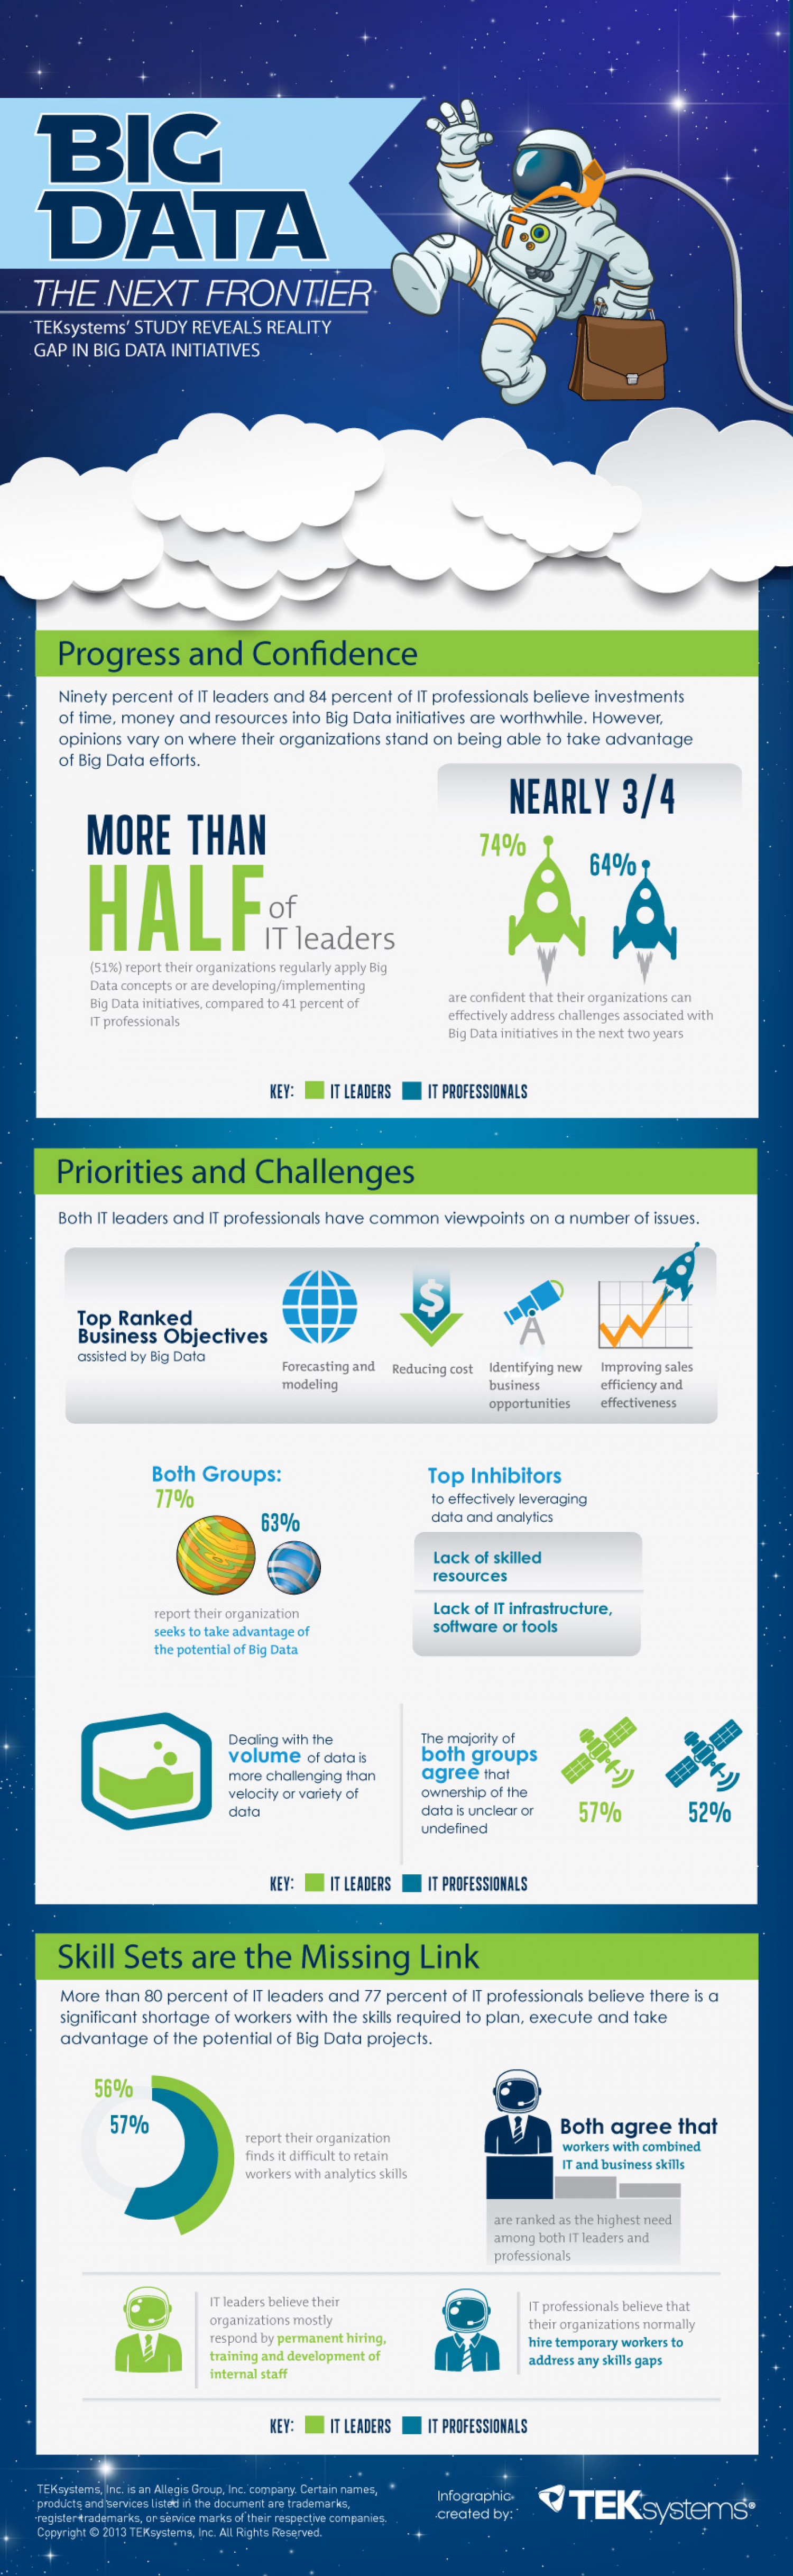 Big Data: The Next Frontier Infographic